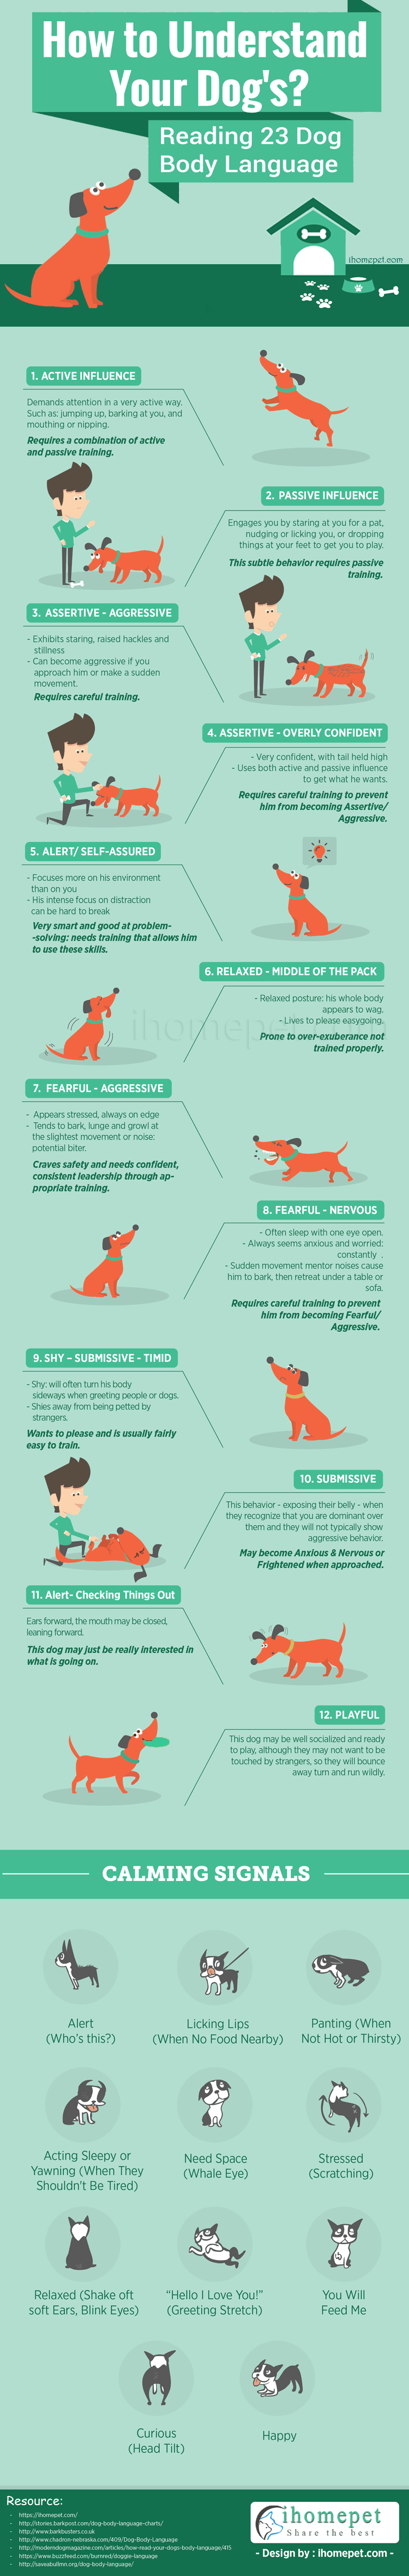 [Infographic] How to Understand Dog Body Language